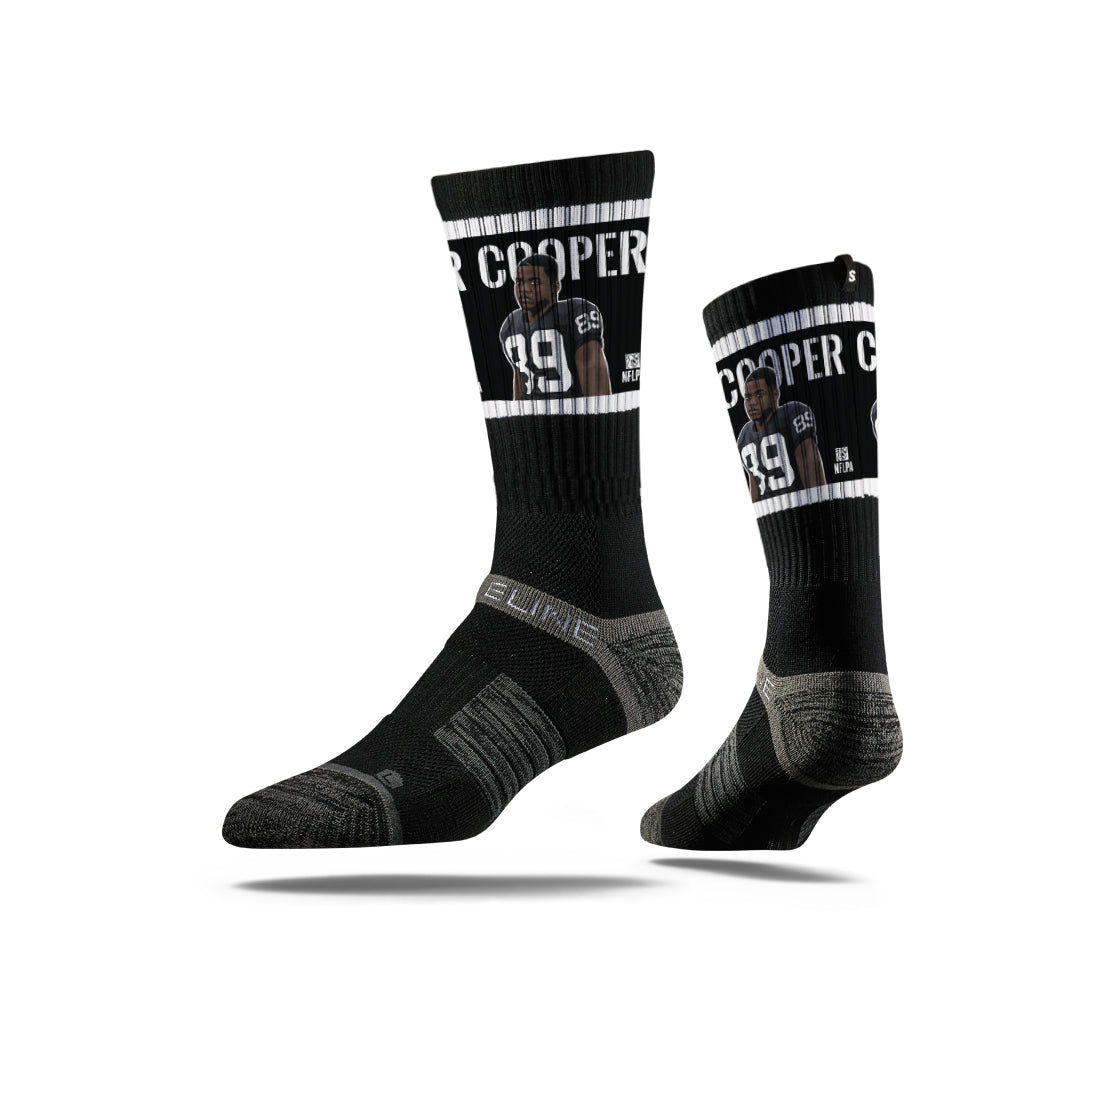 Amari Cooper Black Socks